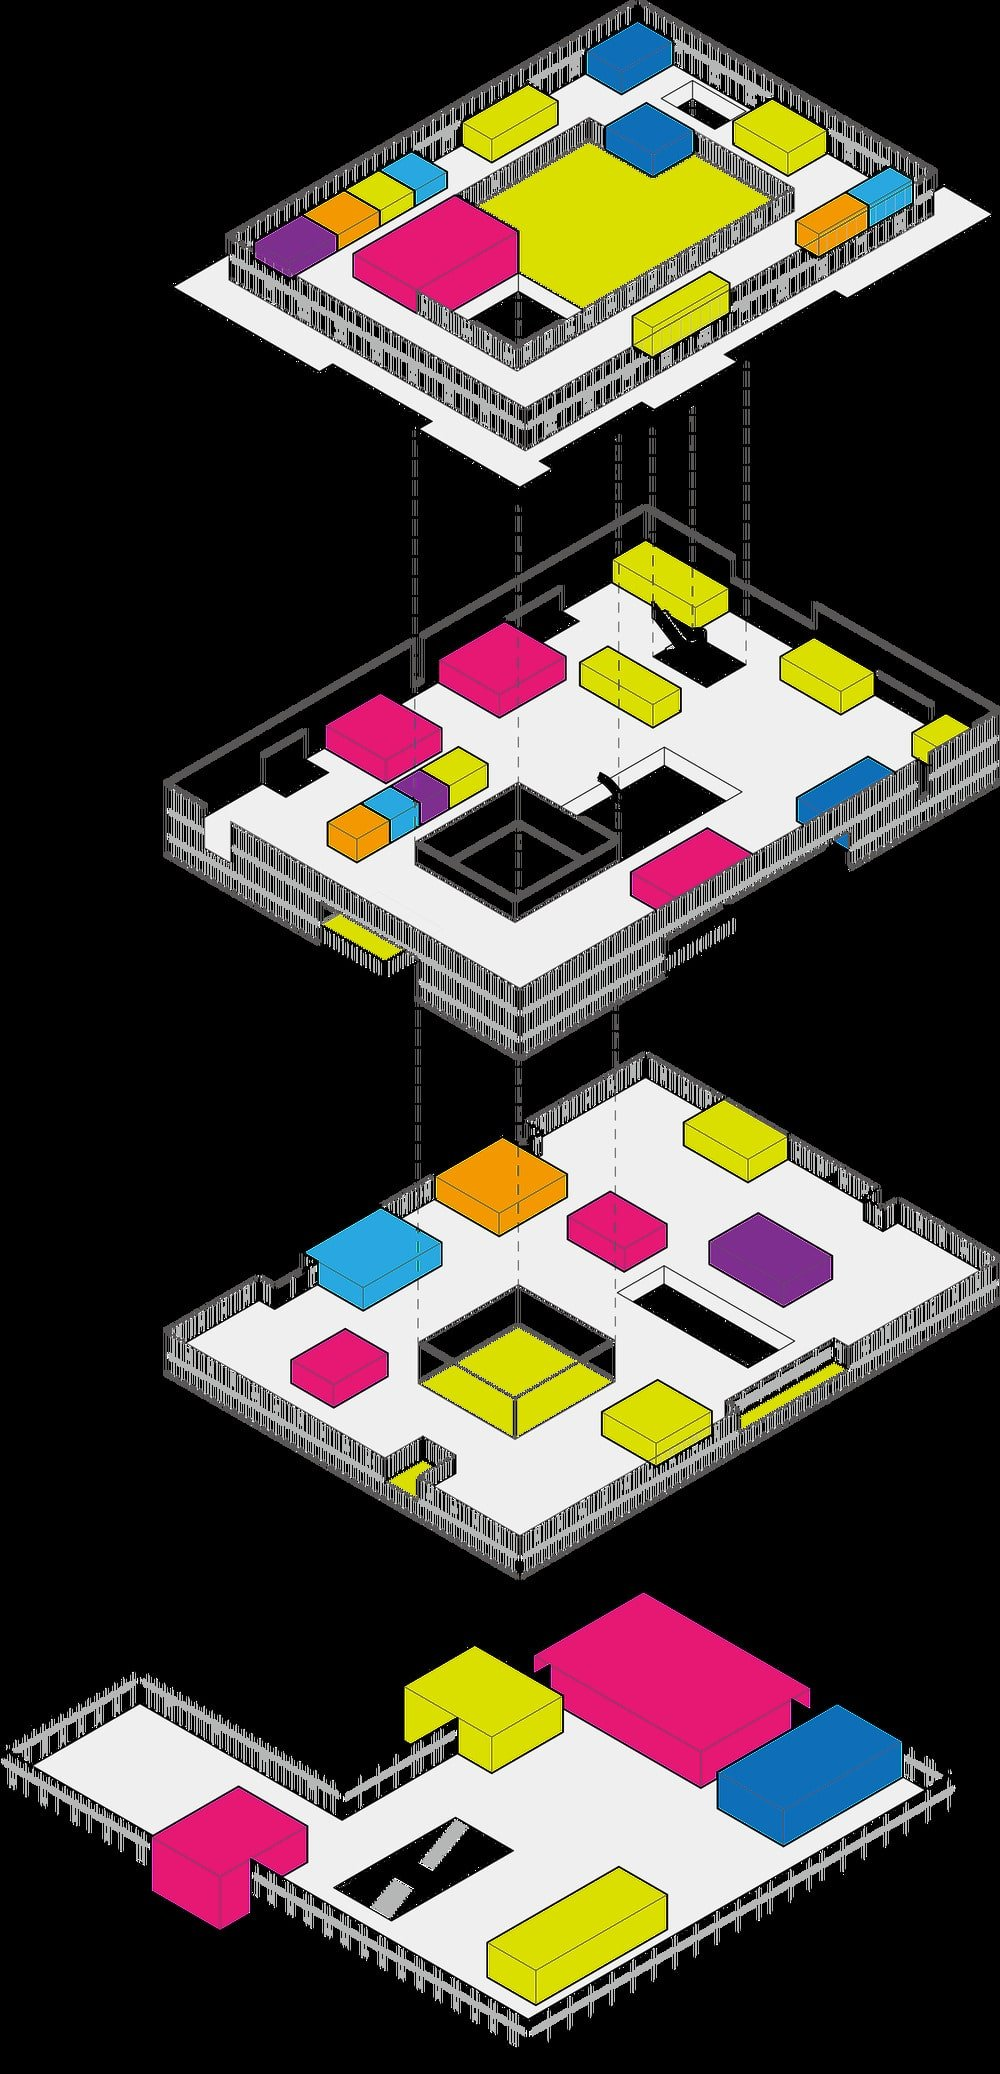 This is an illustration of the four levels of the building with the different sections within identified with various colors.